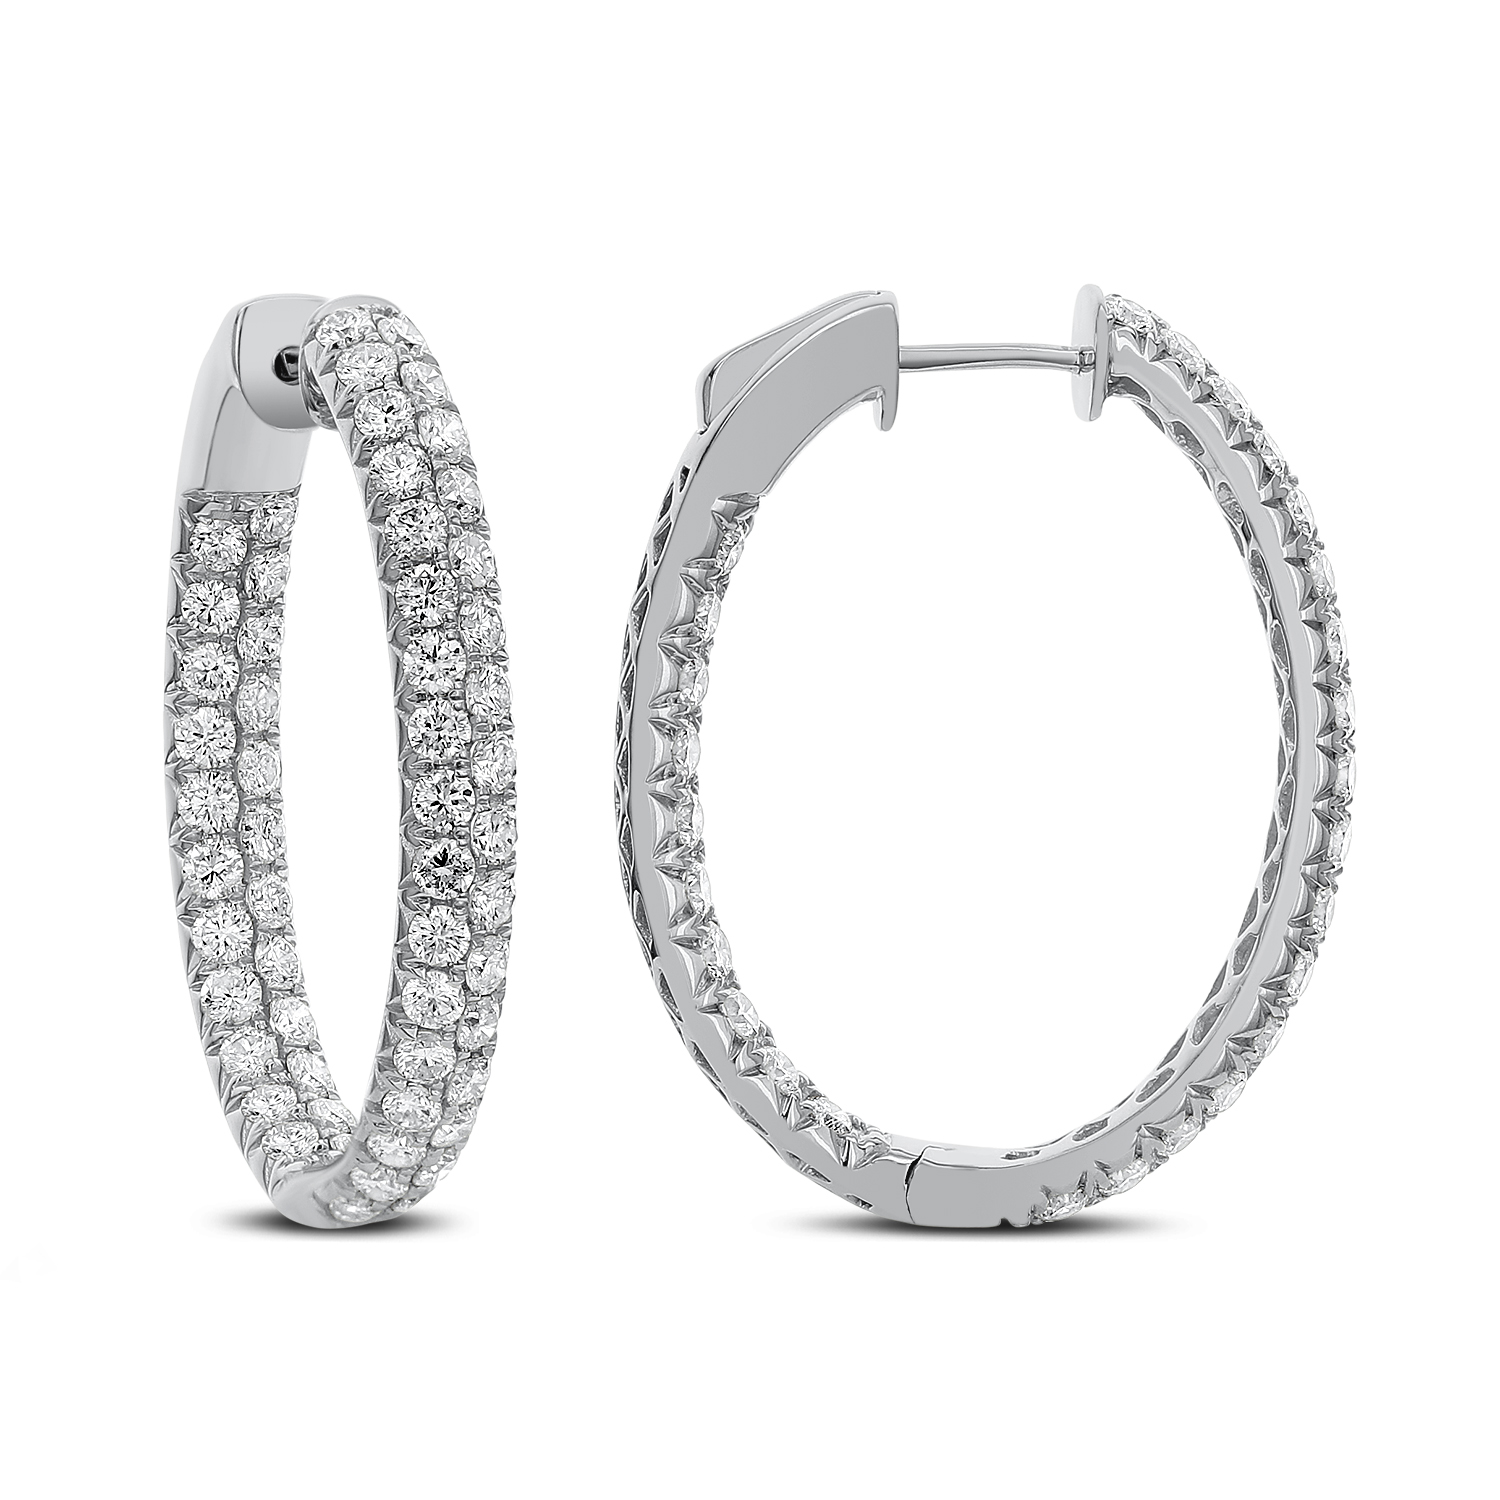 Woven White Gold Diamond Hoops